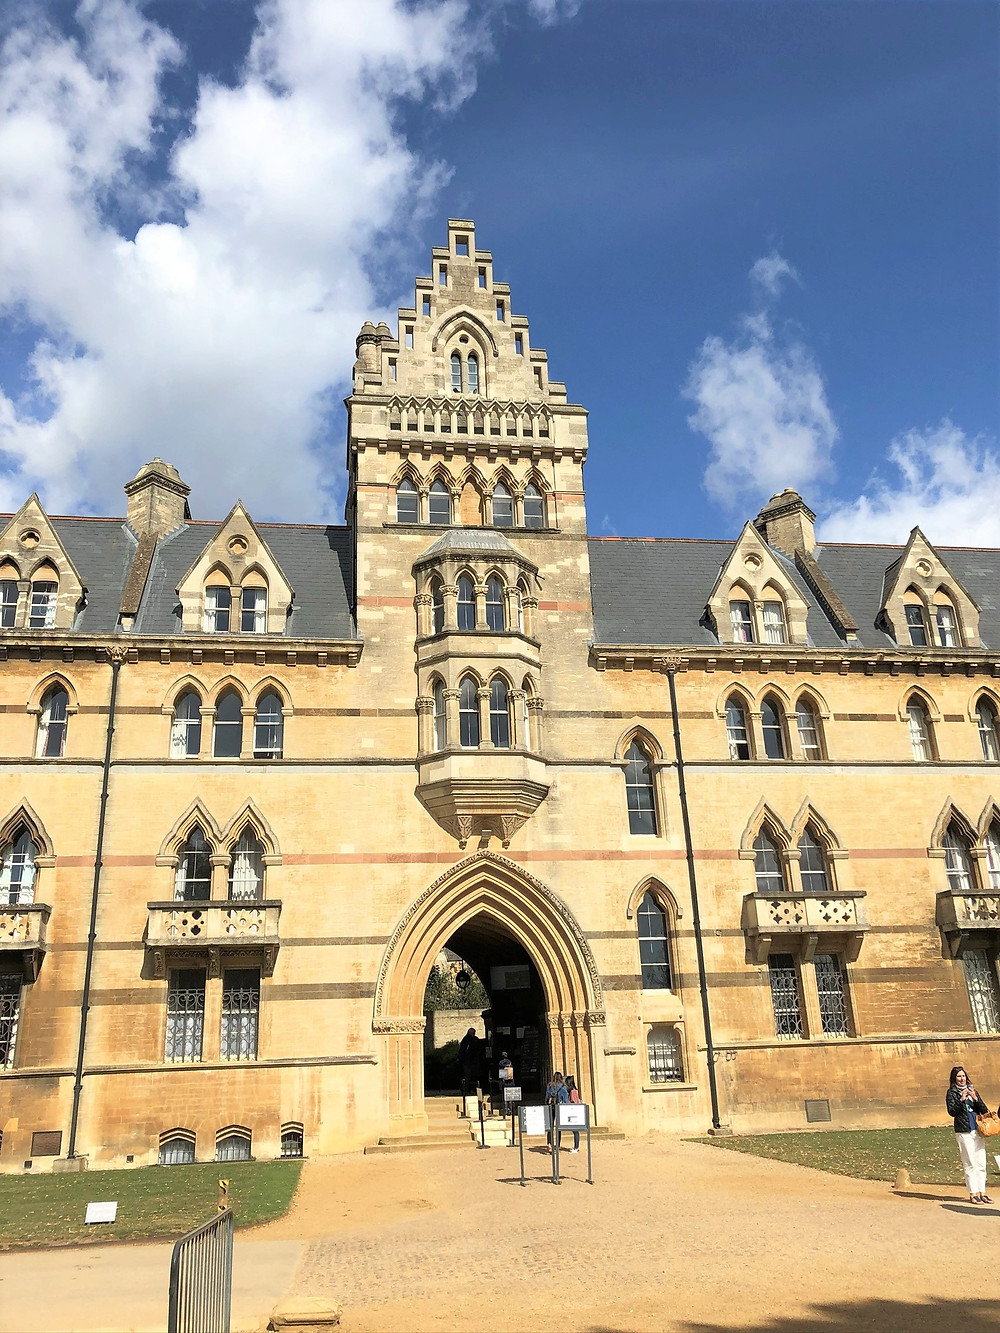 Christ Church College Meadows Building in Oxford England